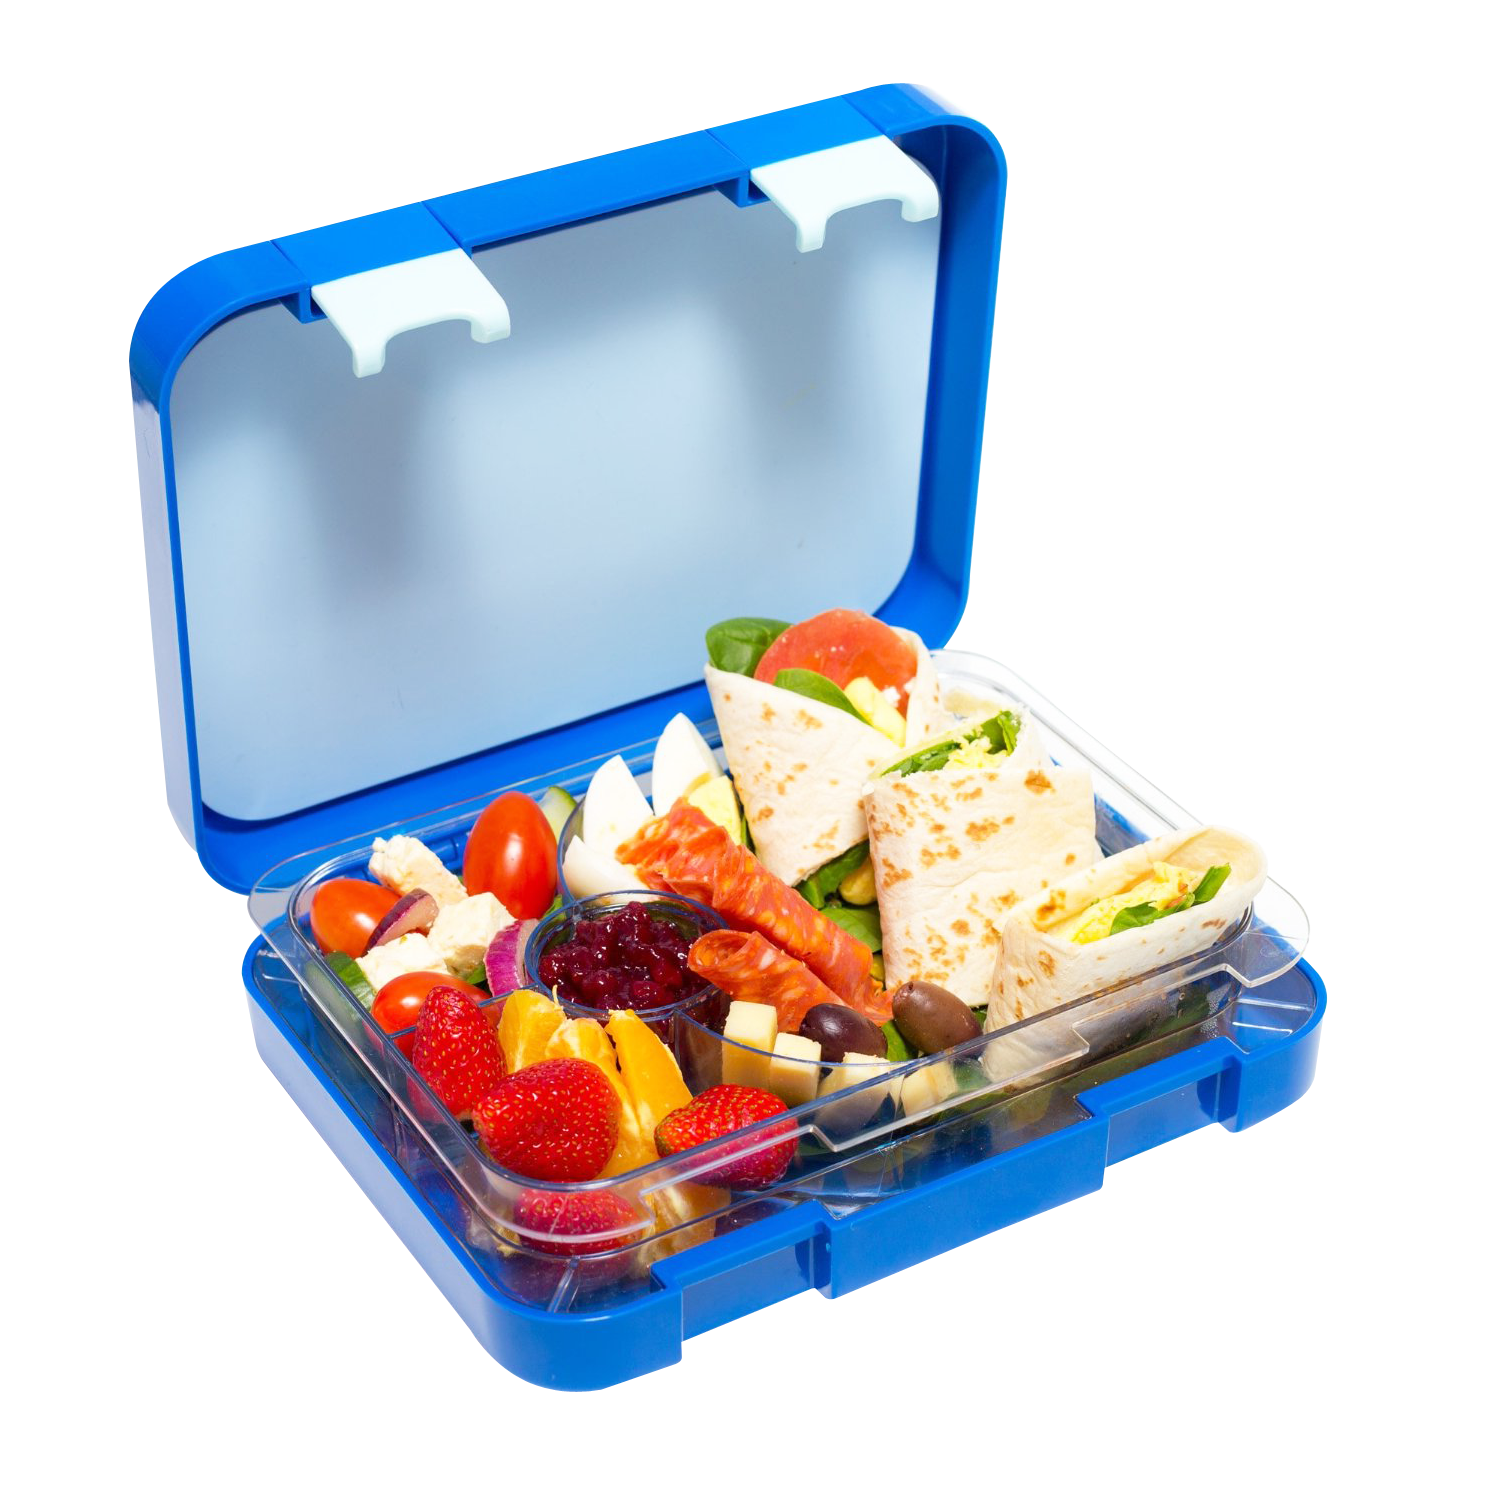 Lunchbox clipart hot lunch. Box png image purepng